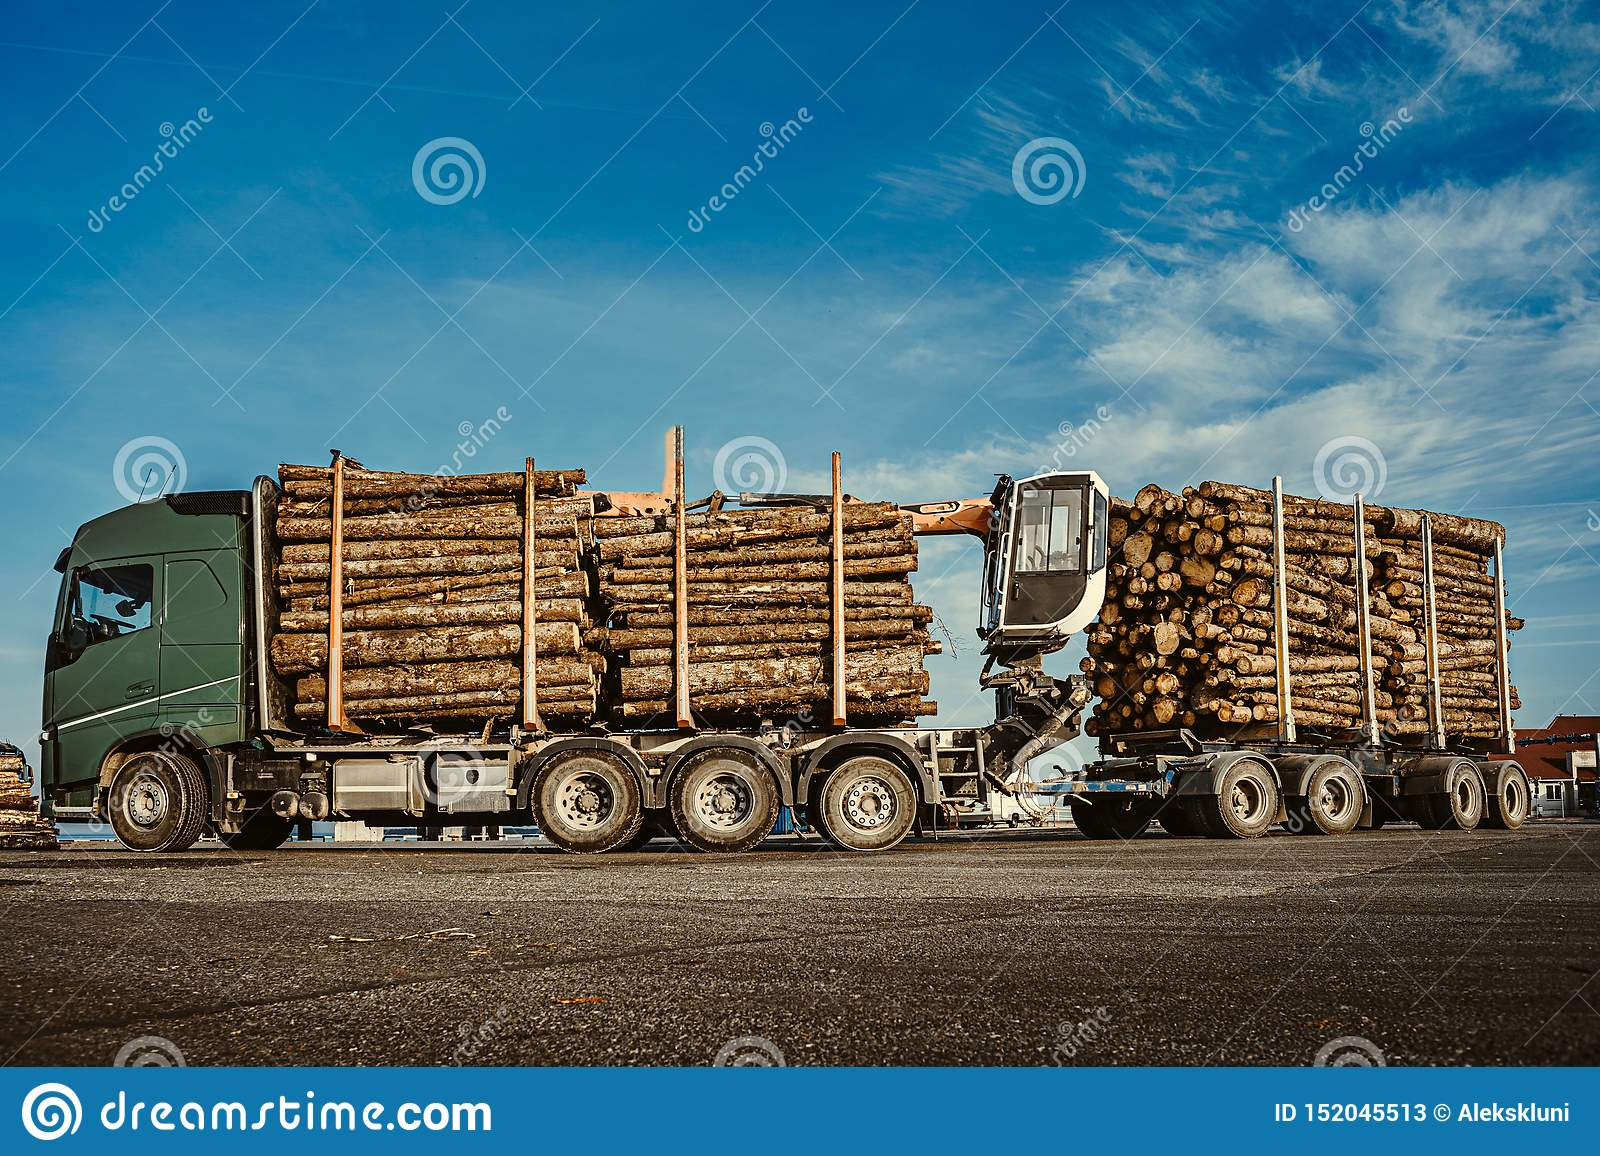 Green truck carrying pulpwood to the cargo ship in the port. Summer time. Close up. Copy space